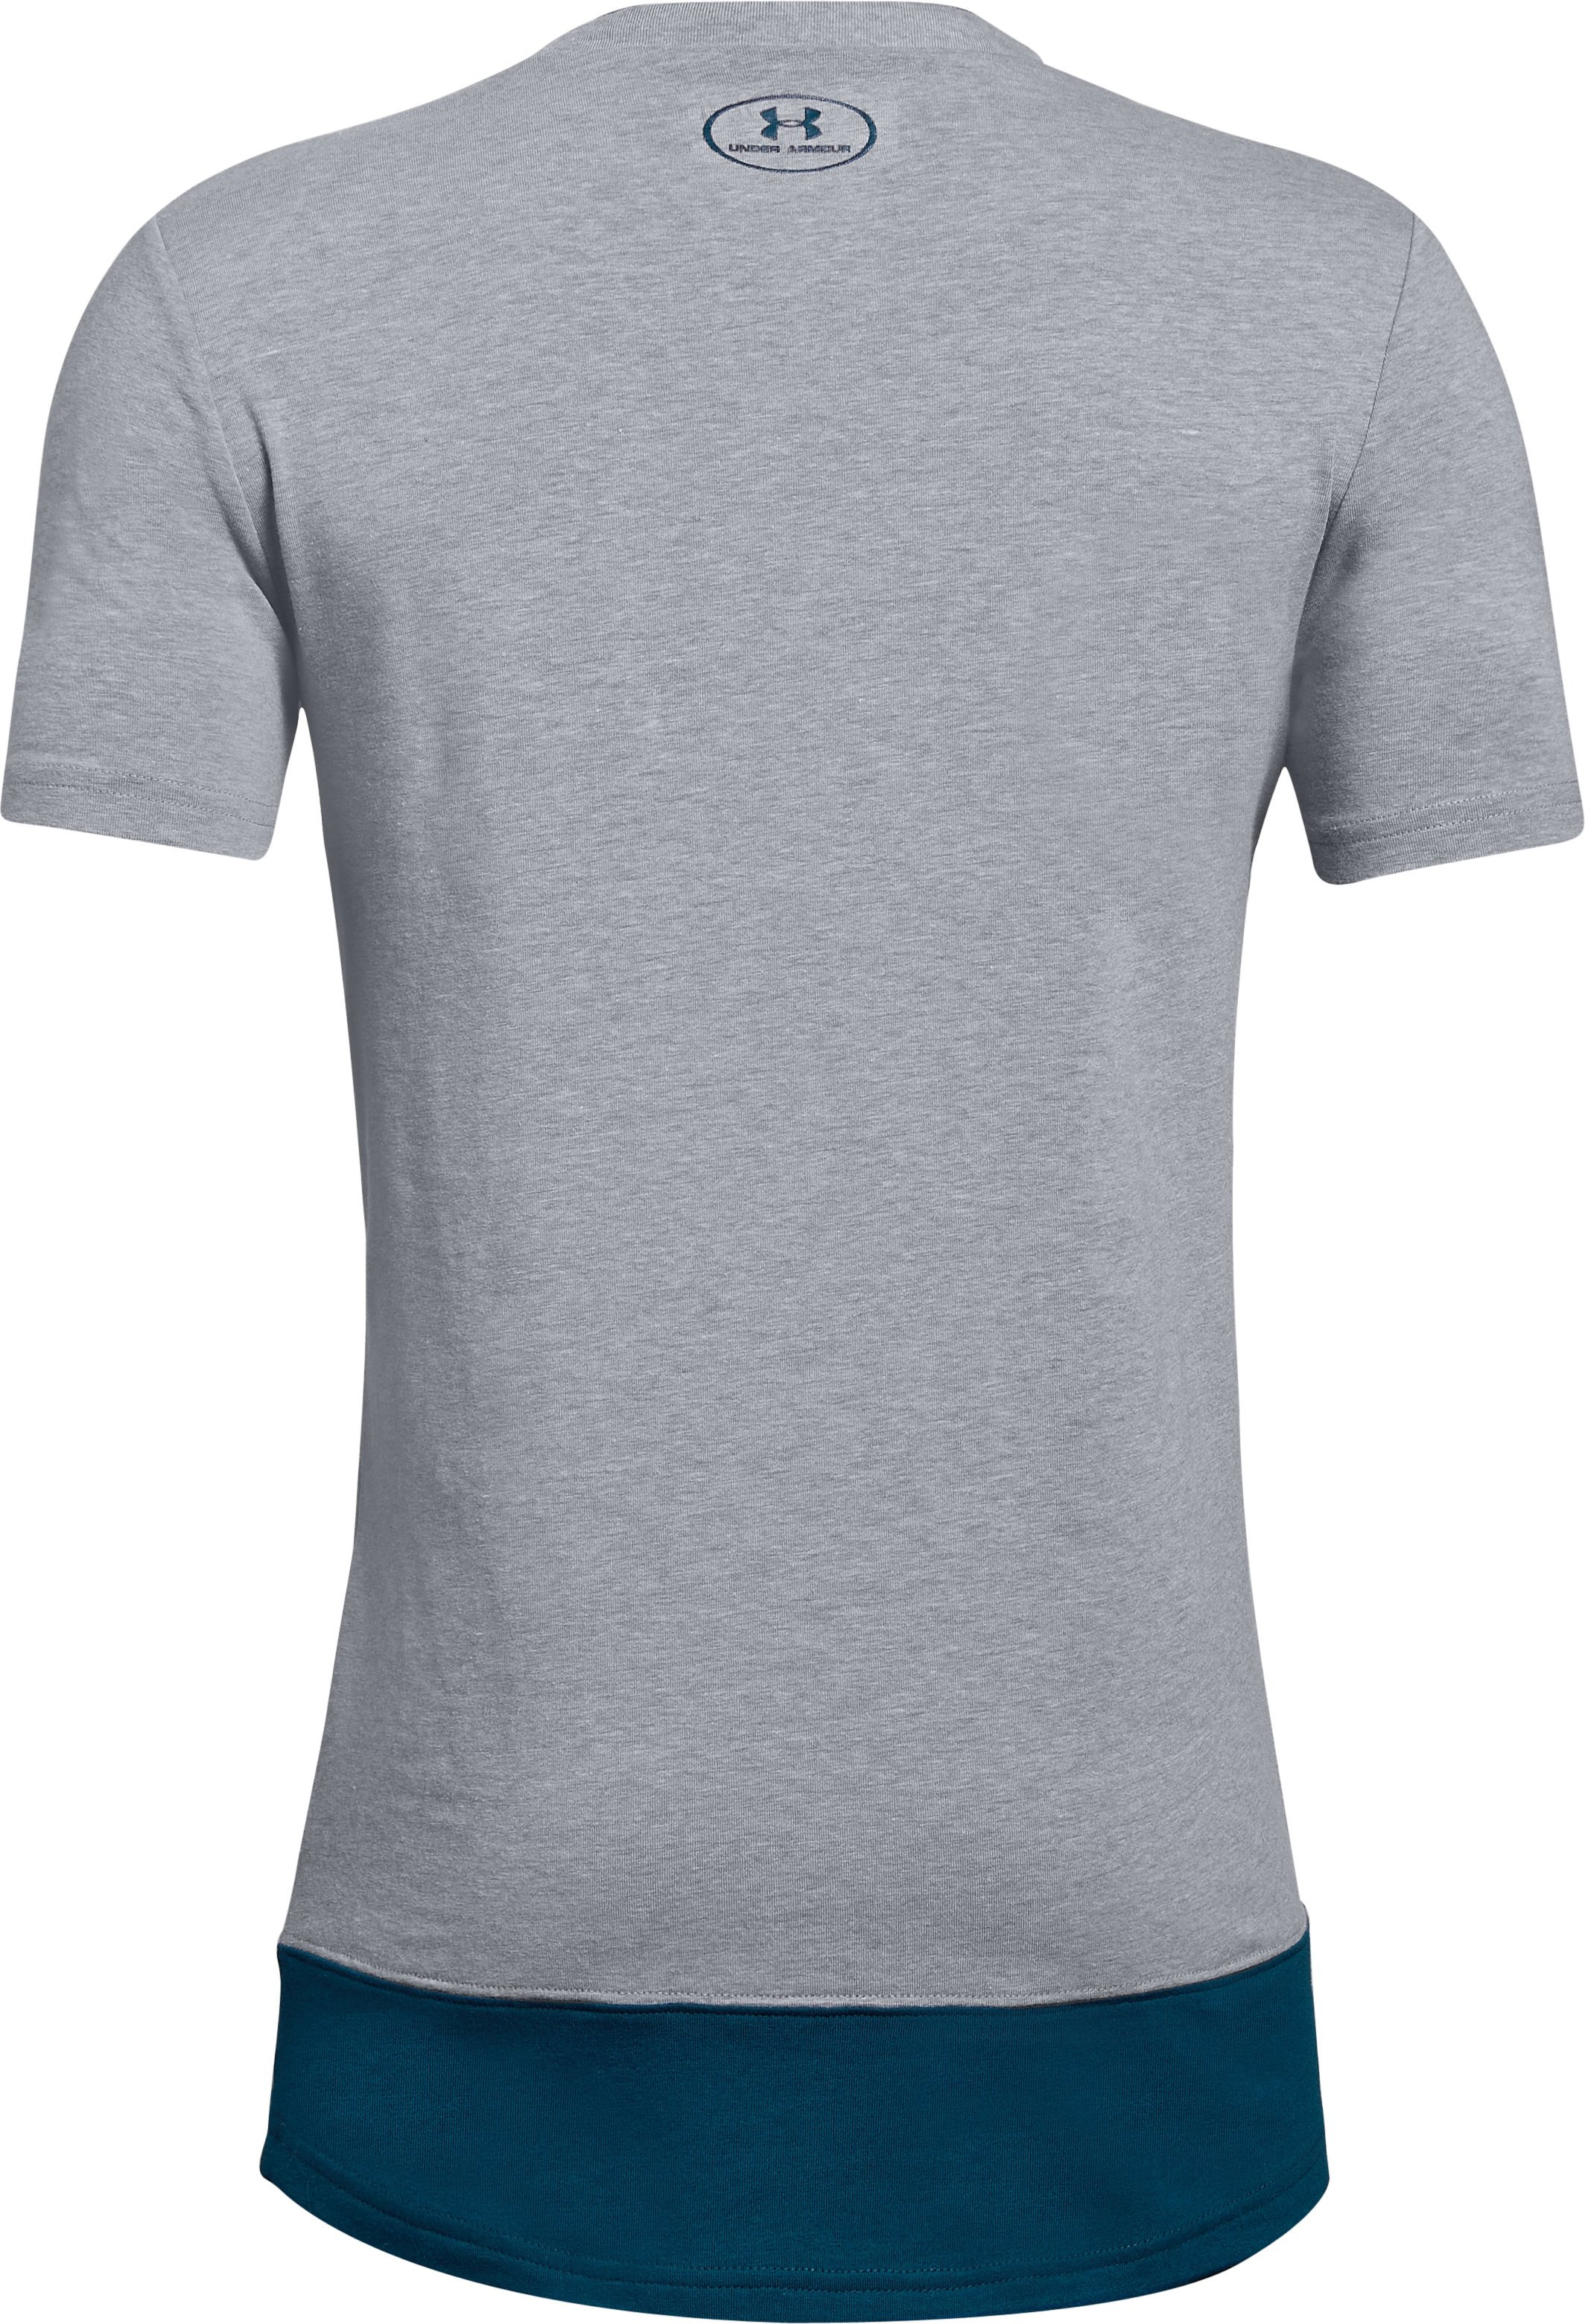 Boys' UA Dominate The Division Short Sleeve T-Shirt, STEEL LIGHT HEATHER,